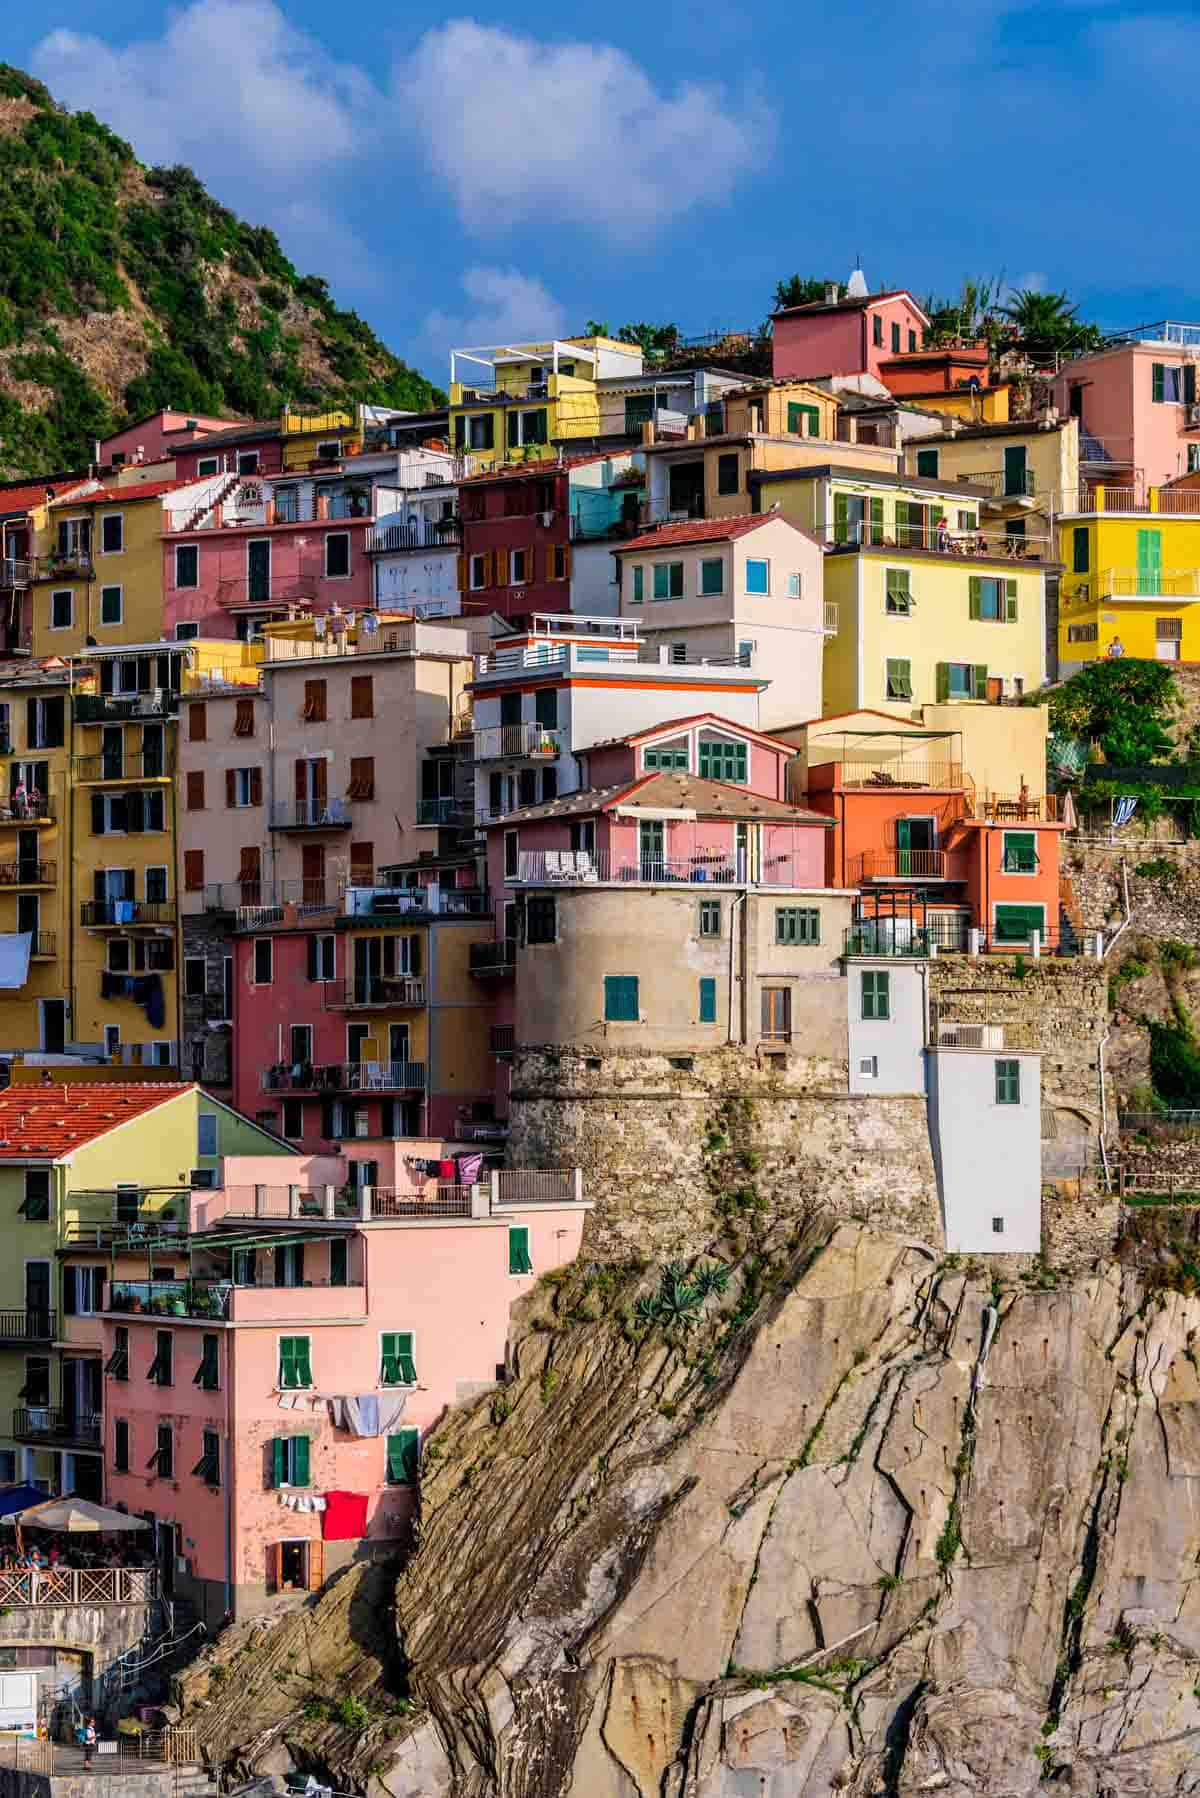 man-made structures in europe cinque terre italy